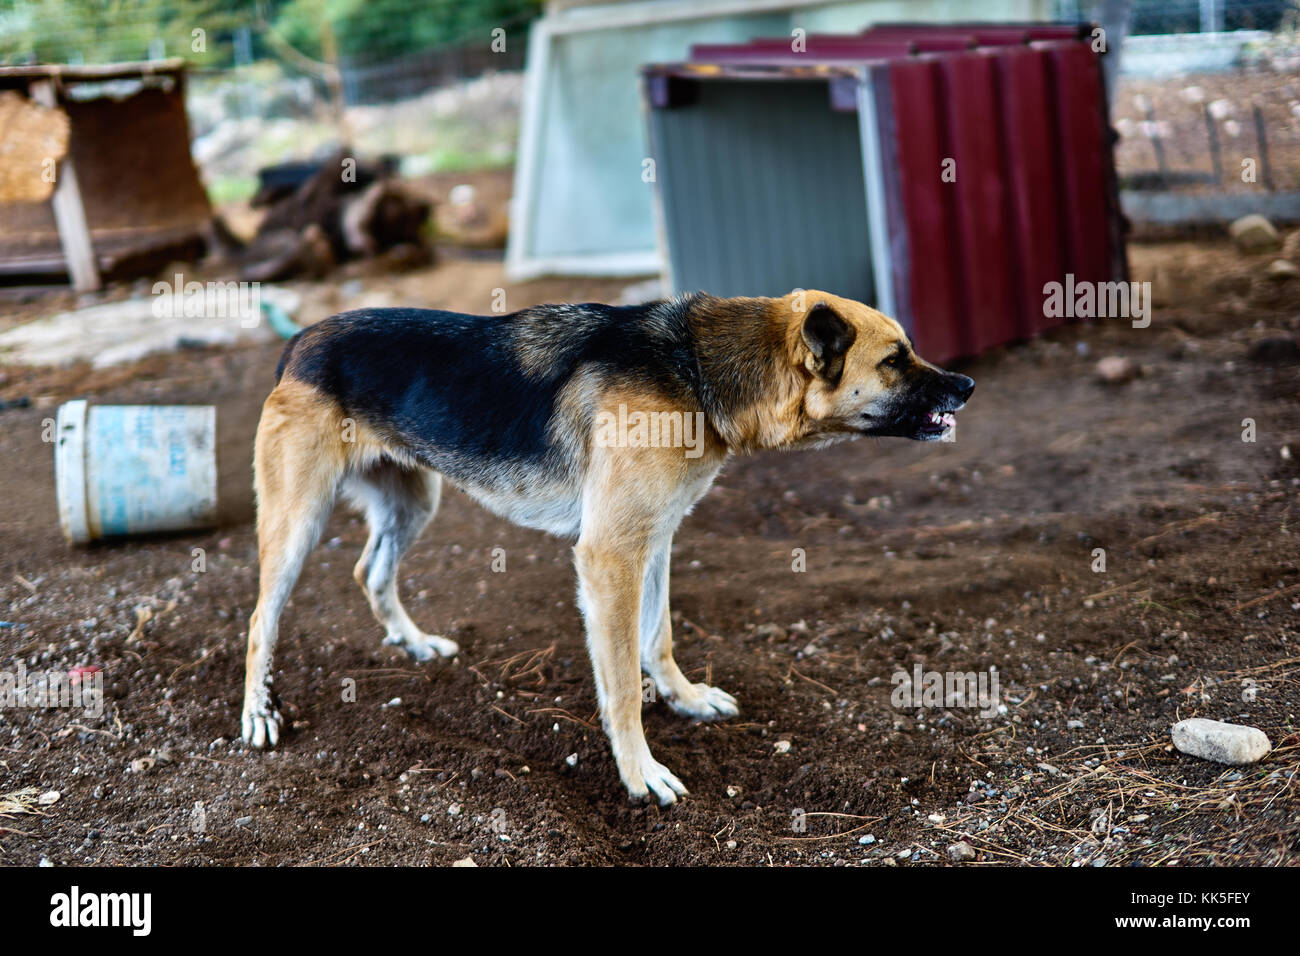 german shepherd dog with aggressive attitude - Stock Image